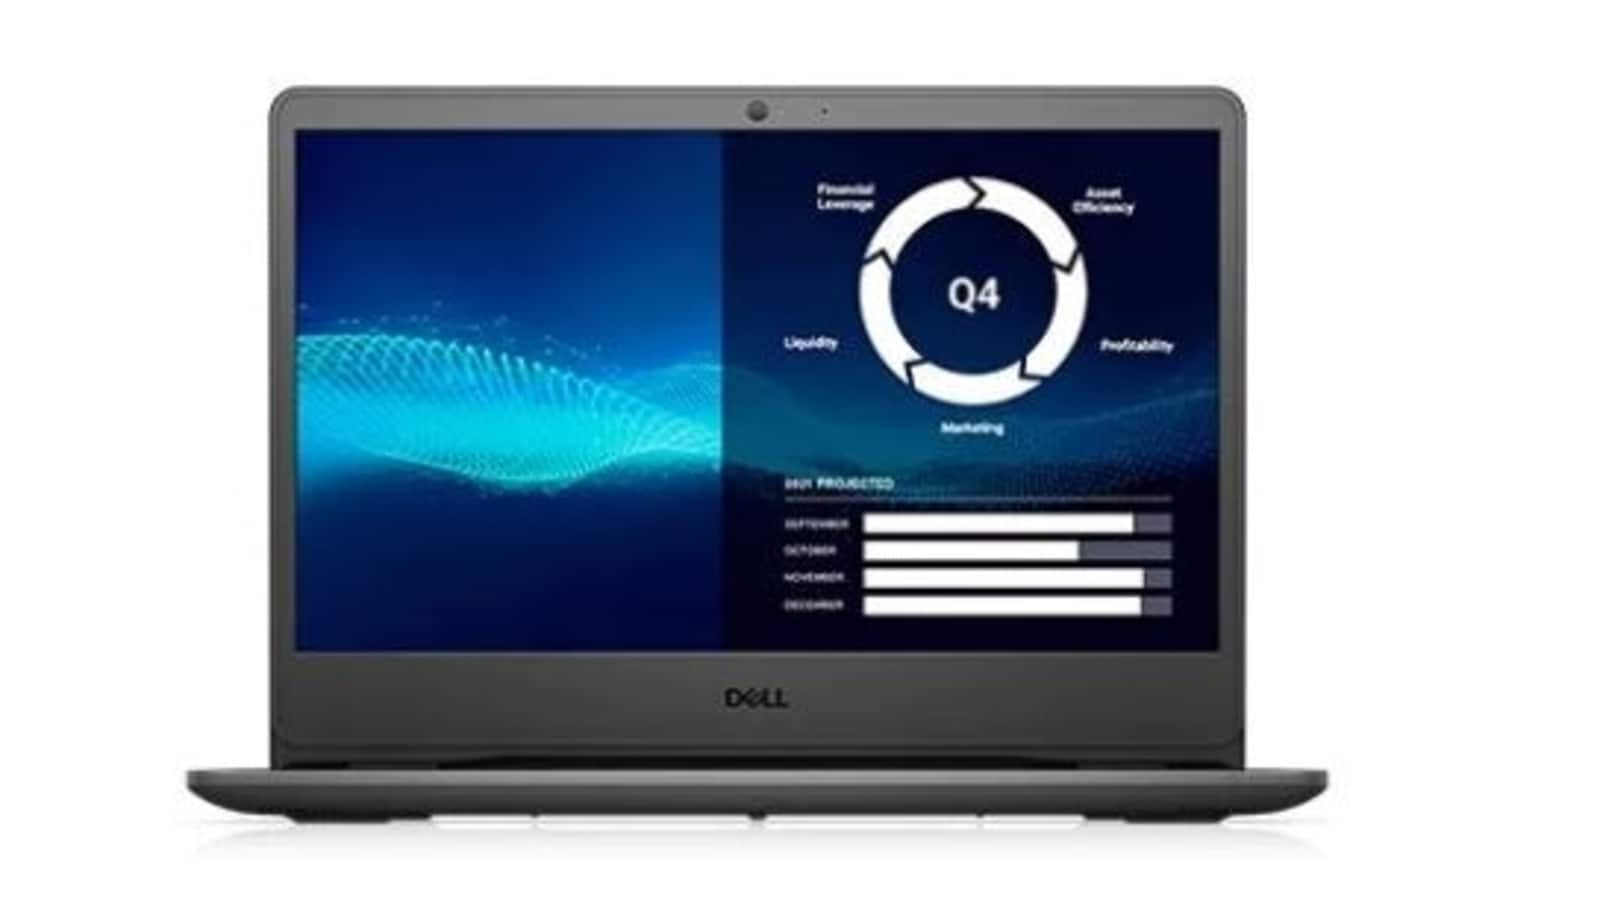 Top 5 Laptops for Under $ 35,000 – From HP 245 G8 to Dell Vostro 14, Check All Out